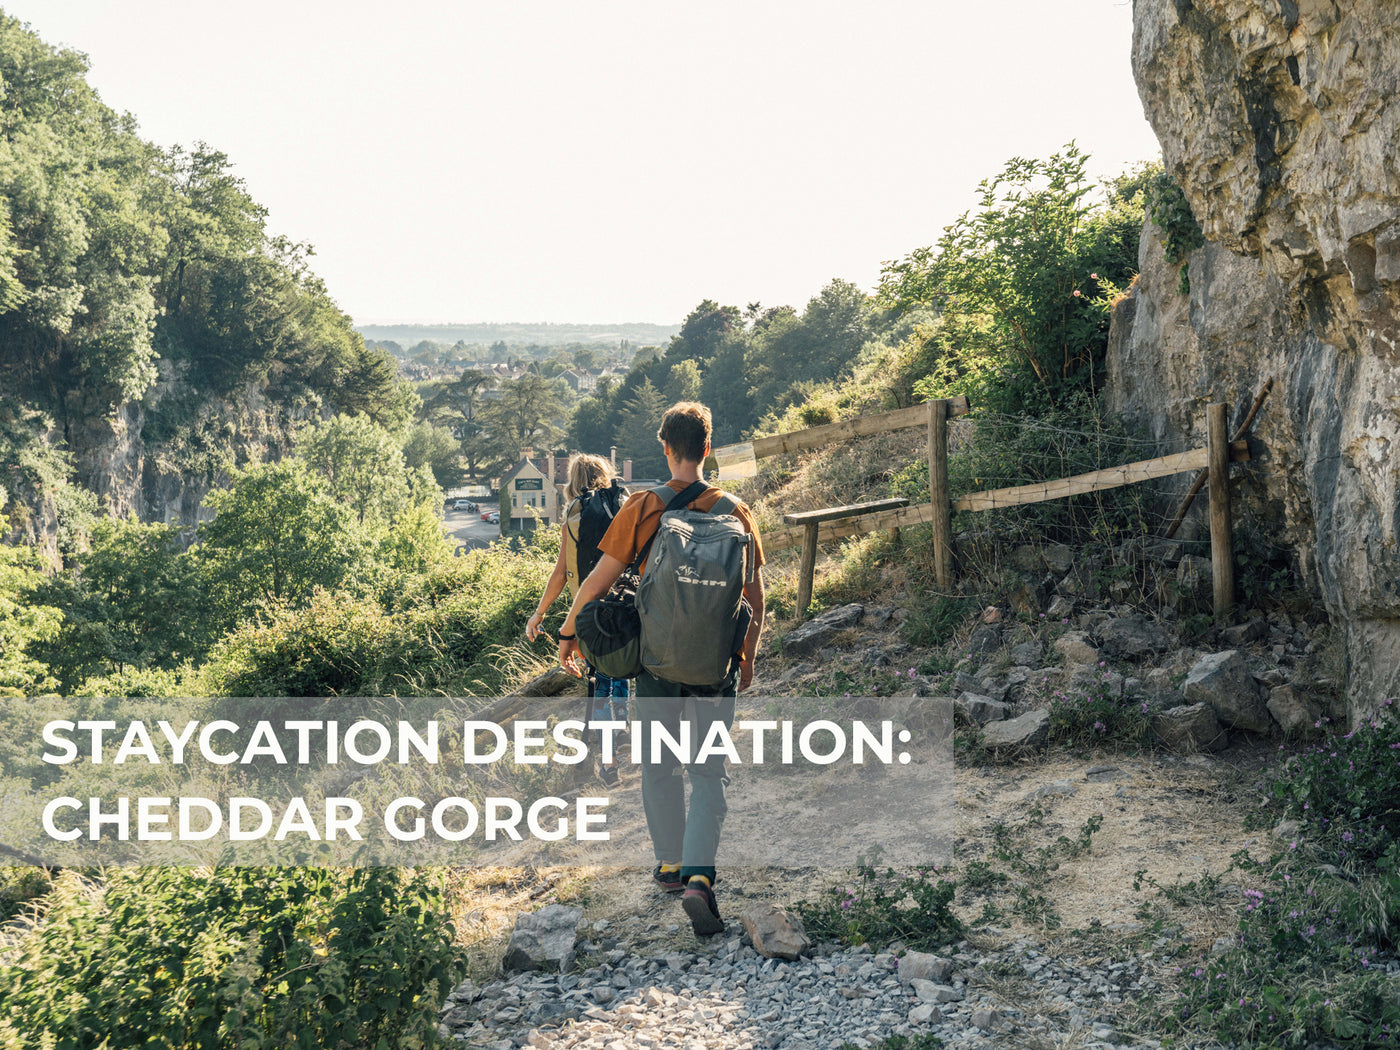 Staycation Destination: South West Sport Climbing Cheddar Gorge